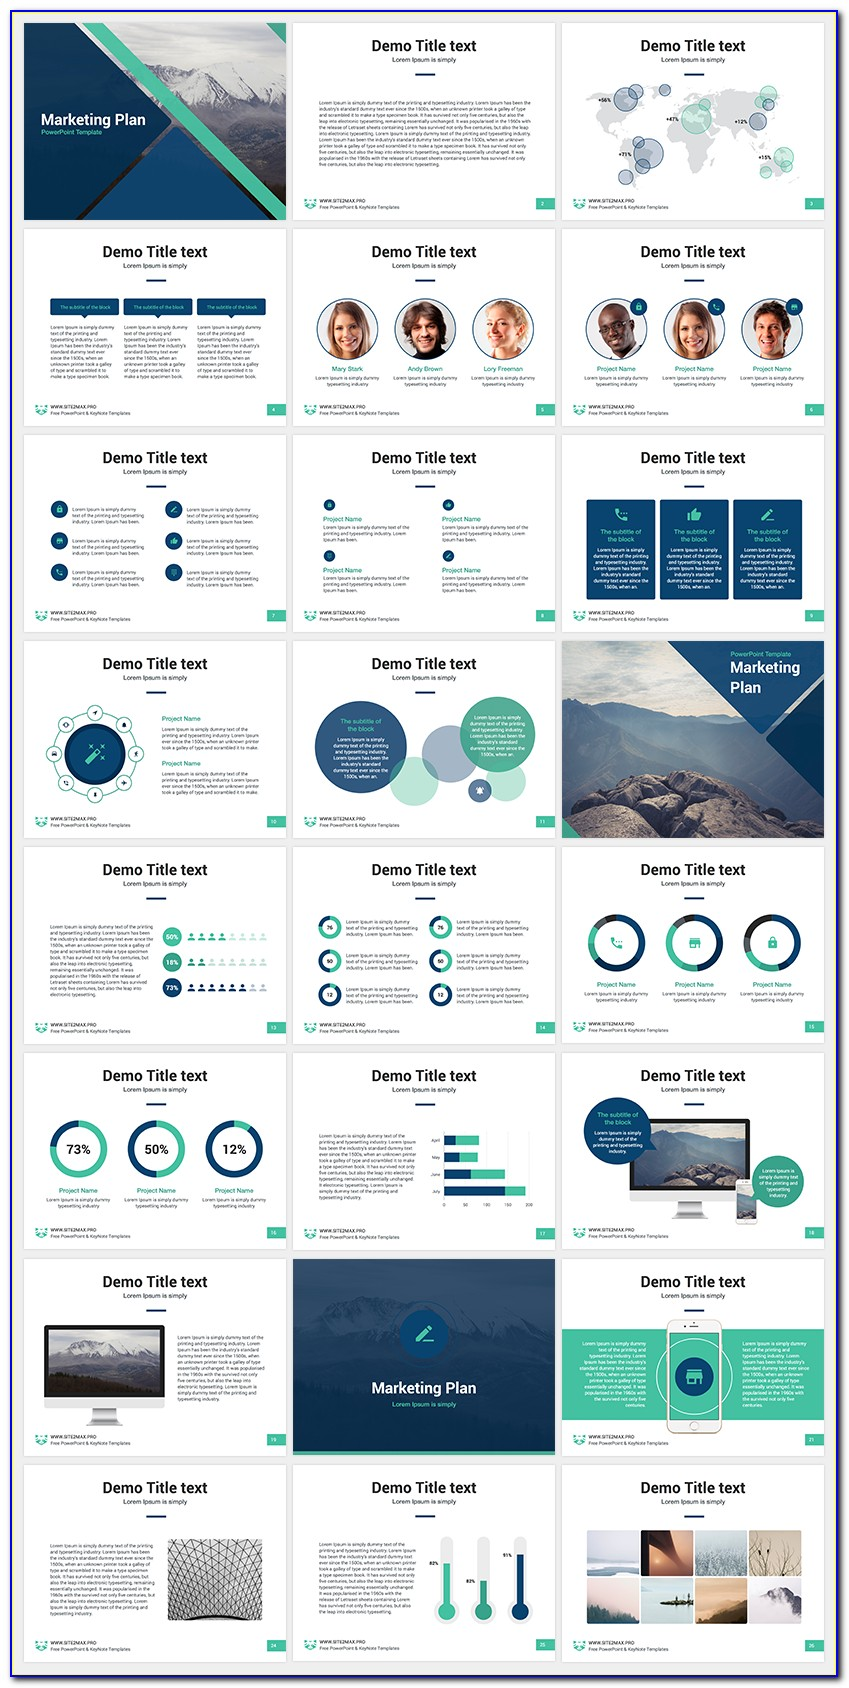 Marketing Plan Presentation Template Ppt